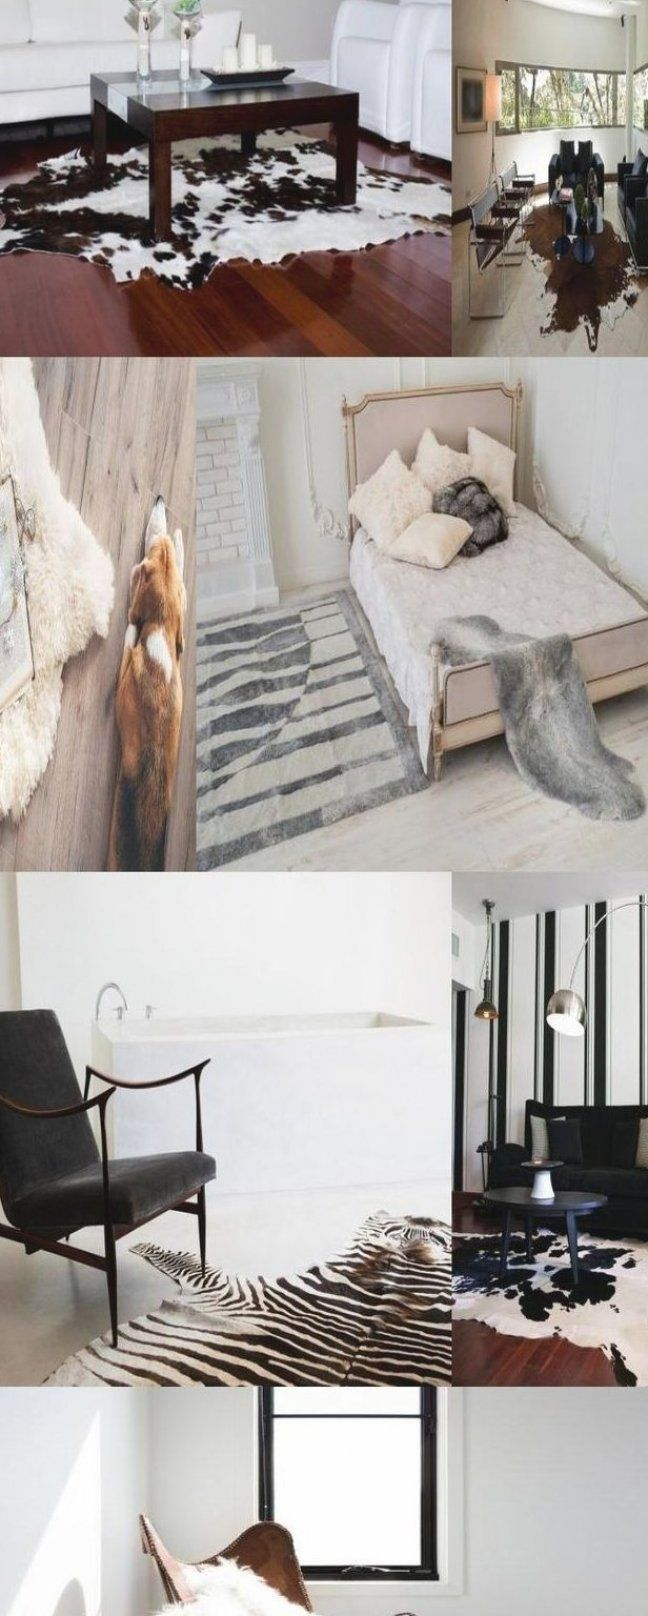 #Using  #Faux  #Sheepskin  #and  #Cowhide  #Rugs  #in  #your  #Home  #decoration  #appartement  #maison  #room  #forbedroom  #chambre  #home  #mariage  #scandinave  #diy  #jardin  #recuperation  #smallapartament  #christmas  #interieure  #house  #boheme  #cuisine  #forhome  #fall  #halloween  #terrasse  #noel  #industrielle  #bureau  #cuartos  #bathroom  #entree  #thanksgiving  #apartment  #plants  #studio  #paques  #balloon  #champetre  #couloir  #photo  #holiday  #easter  #autumn  #party  #id